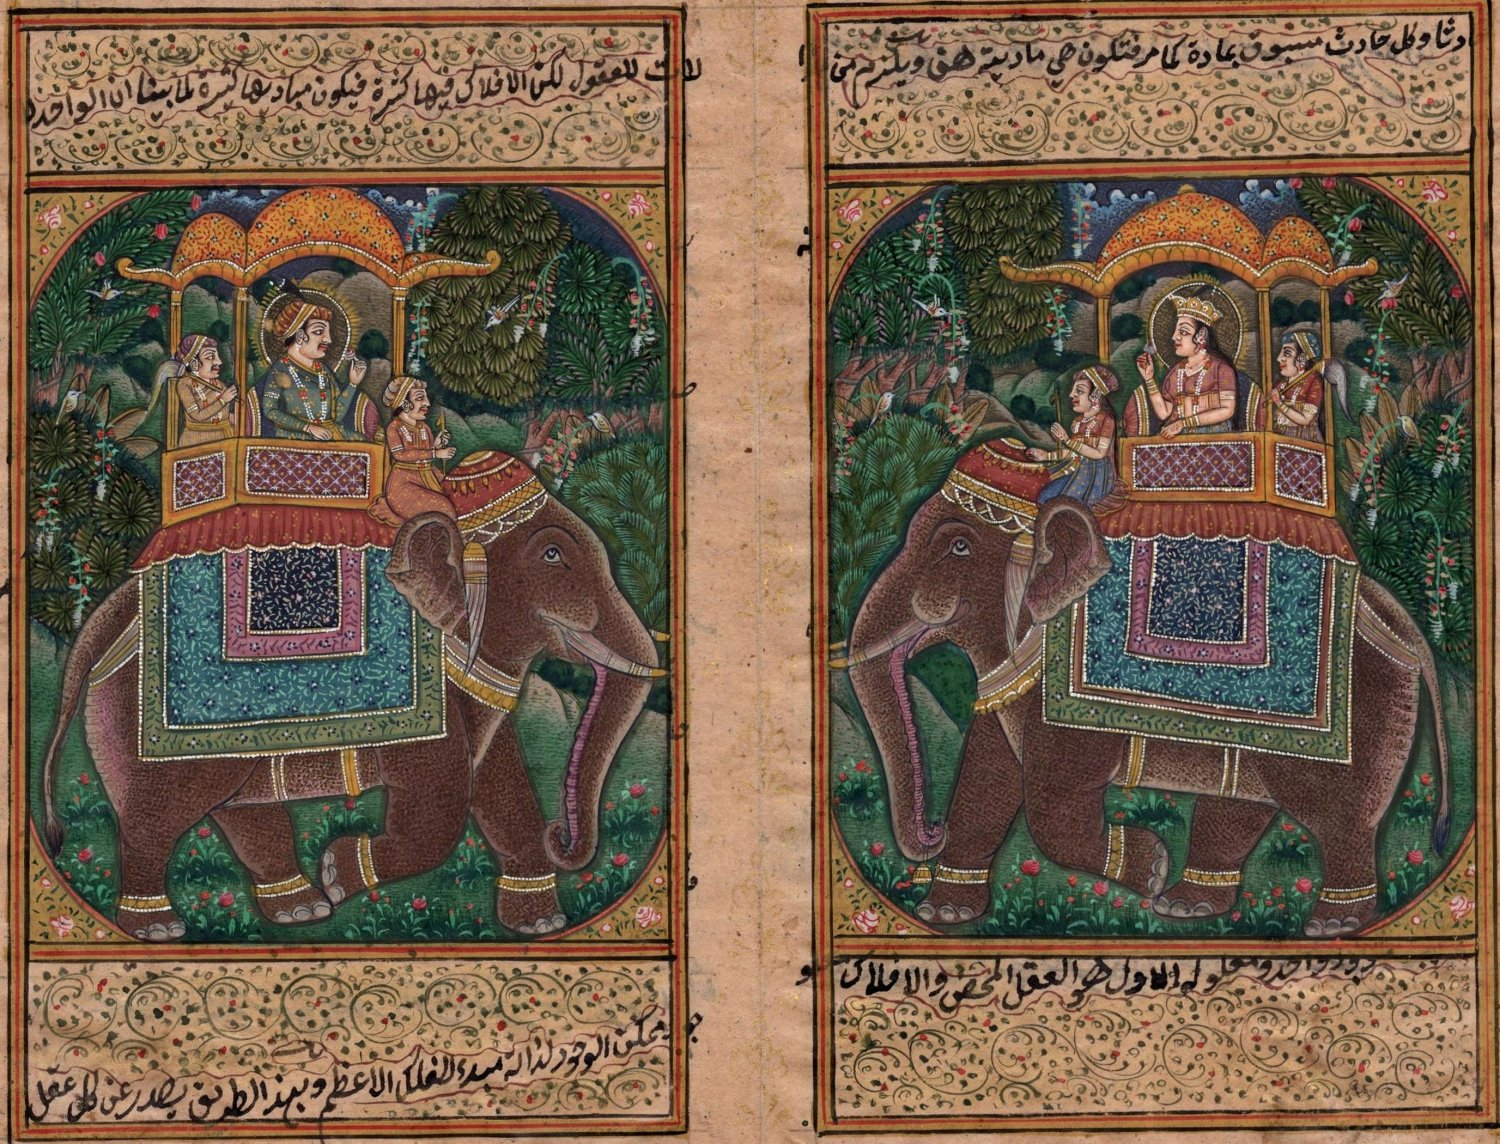 Mughal Miniature Painting Handmade Illuminated Manuscript Indian Elephant Art